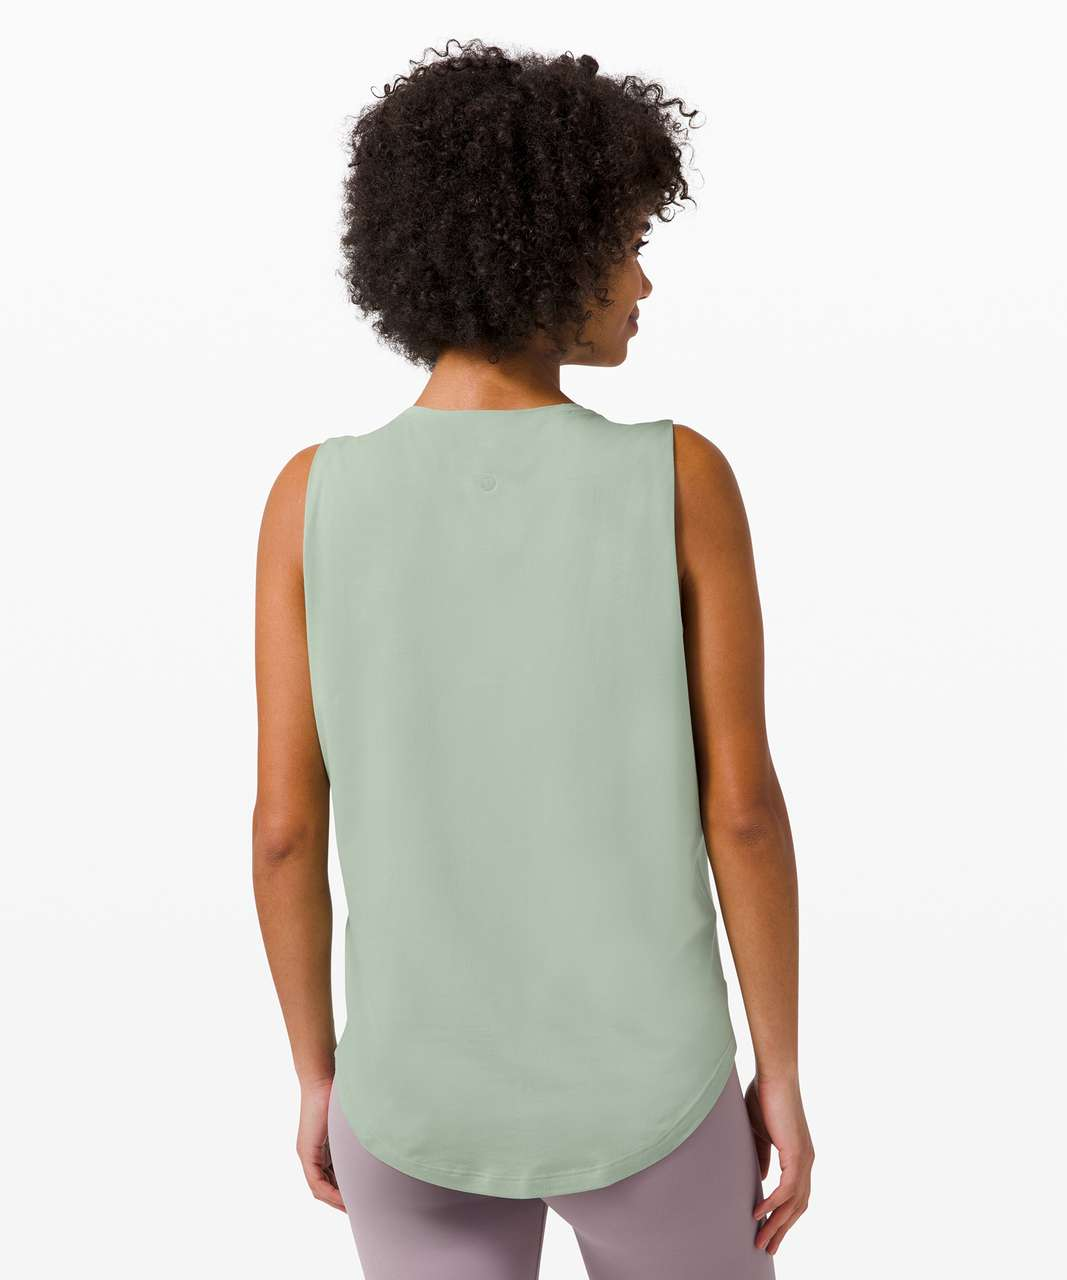 Lululemon Brunswick Muscle Tank - Willow Green